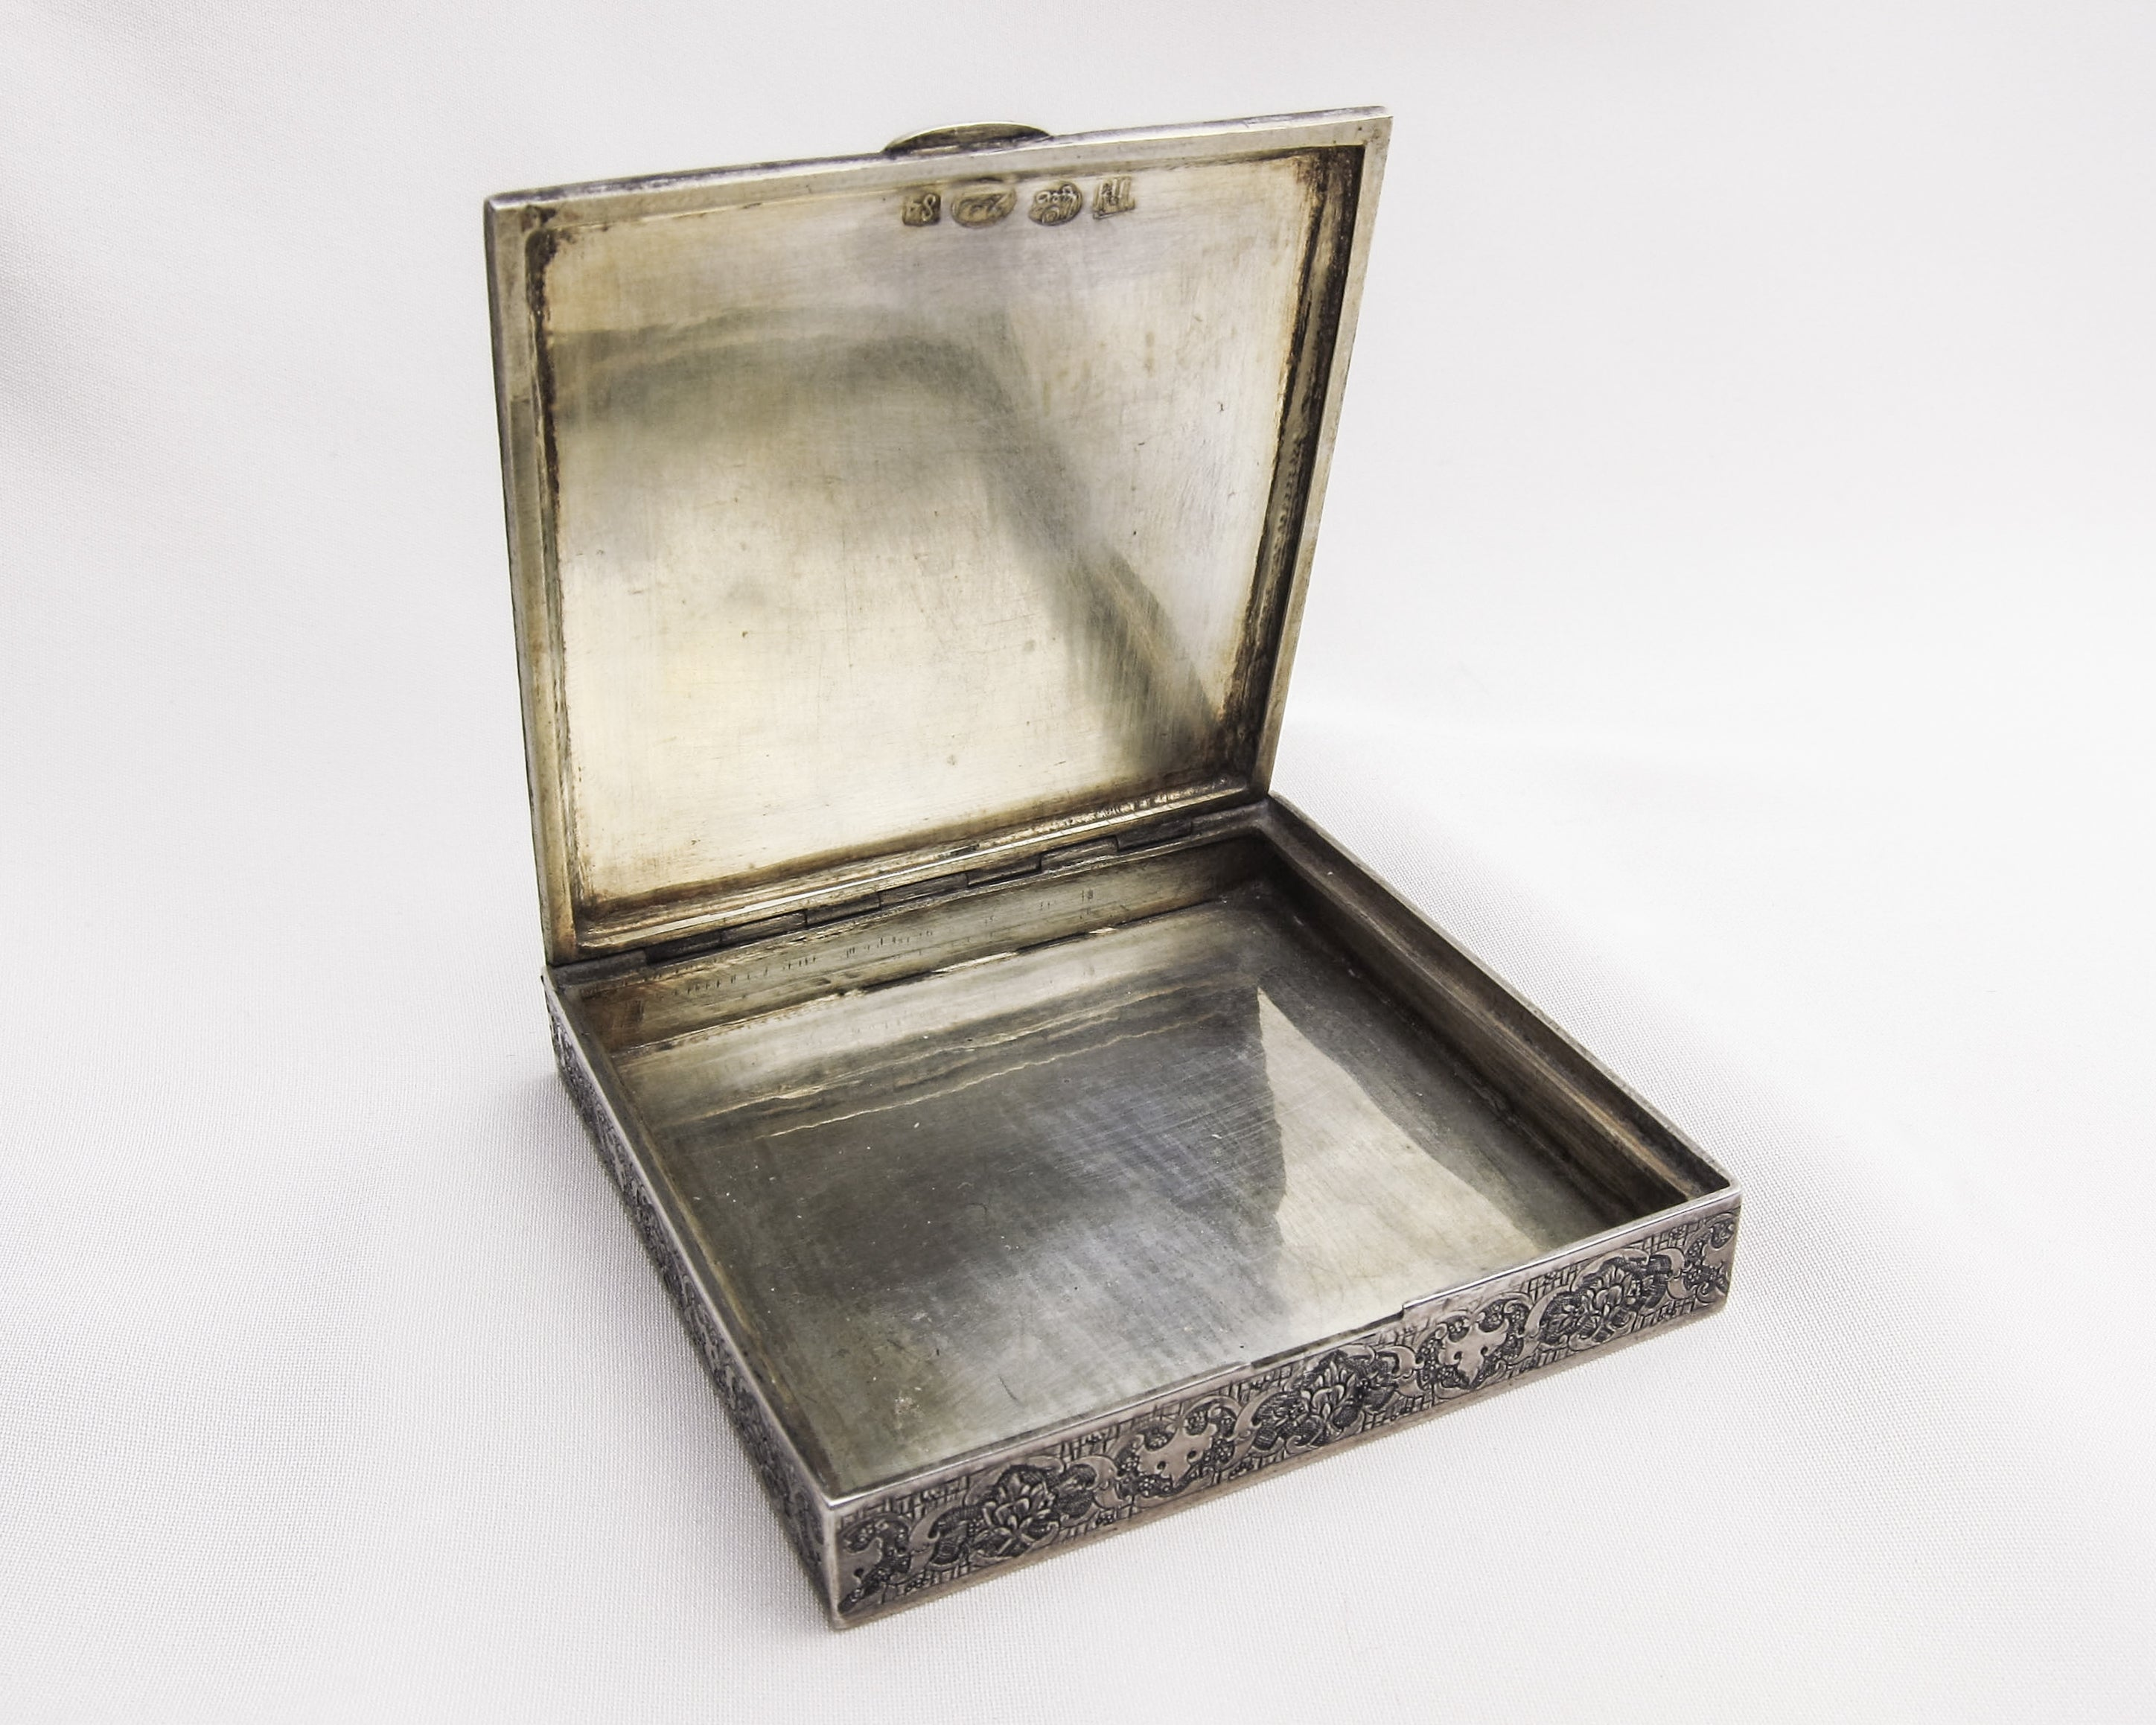 Russian Engraved Silver Box